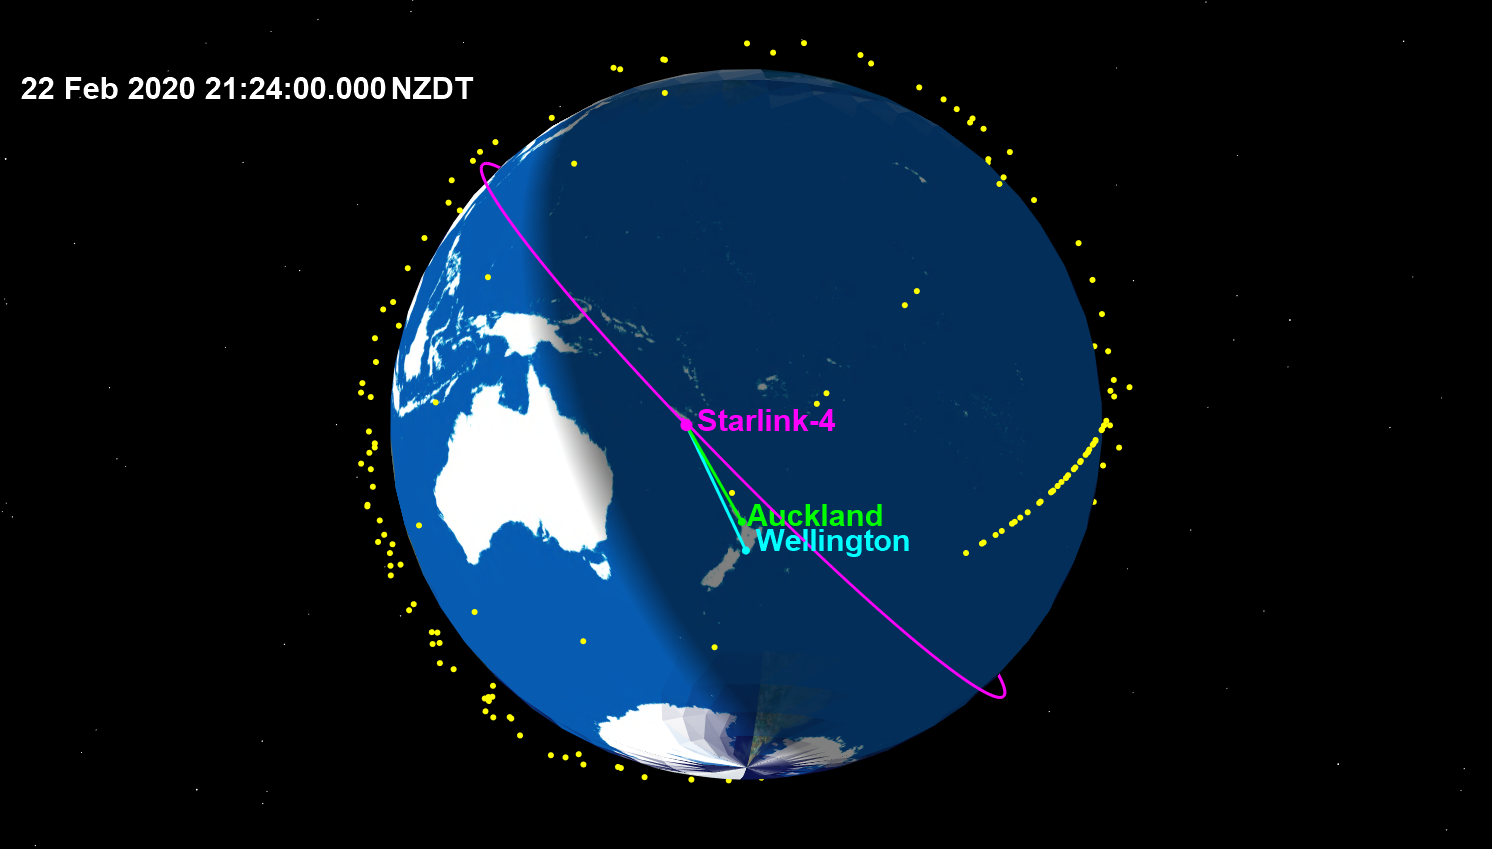 Featured image: New launch of 60 SpaceX satellites crossing NZ